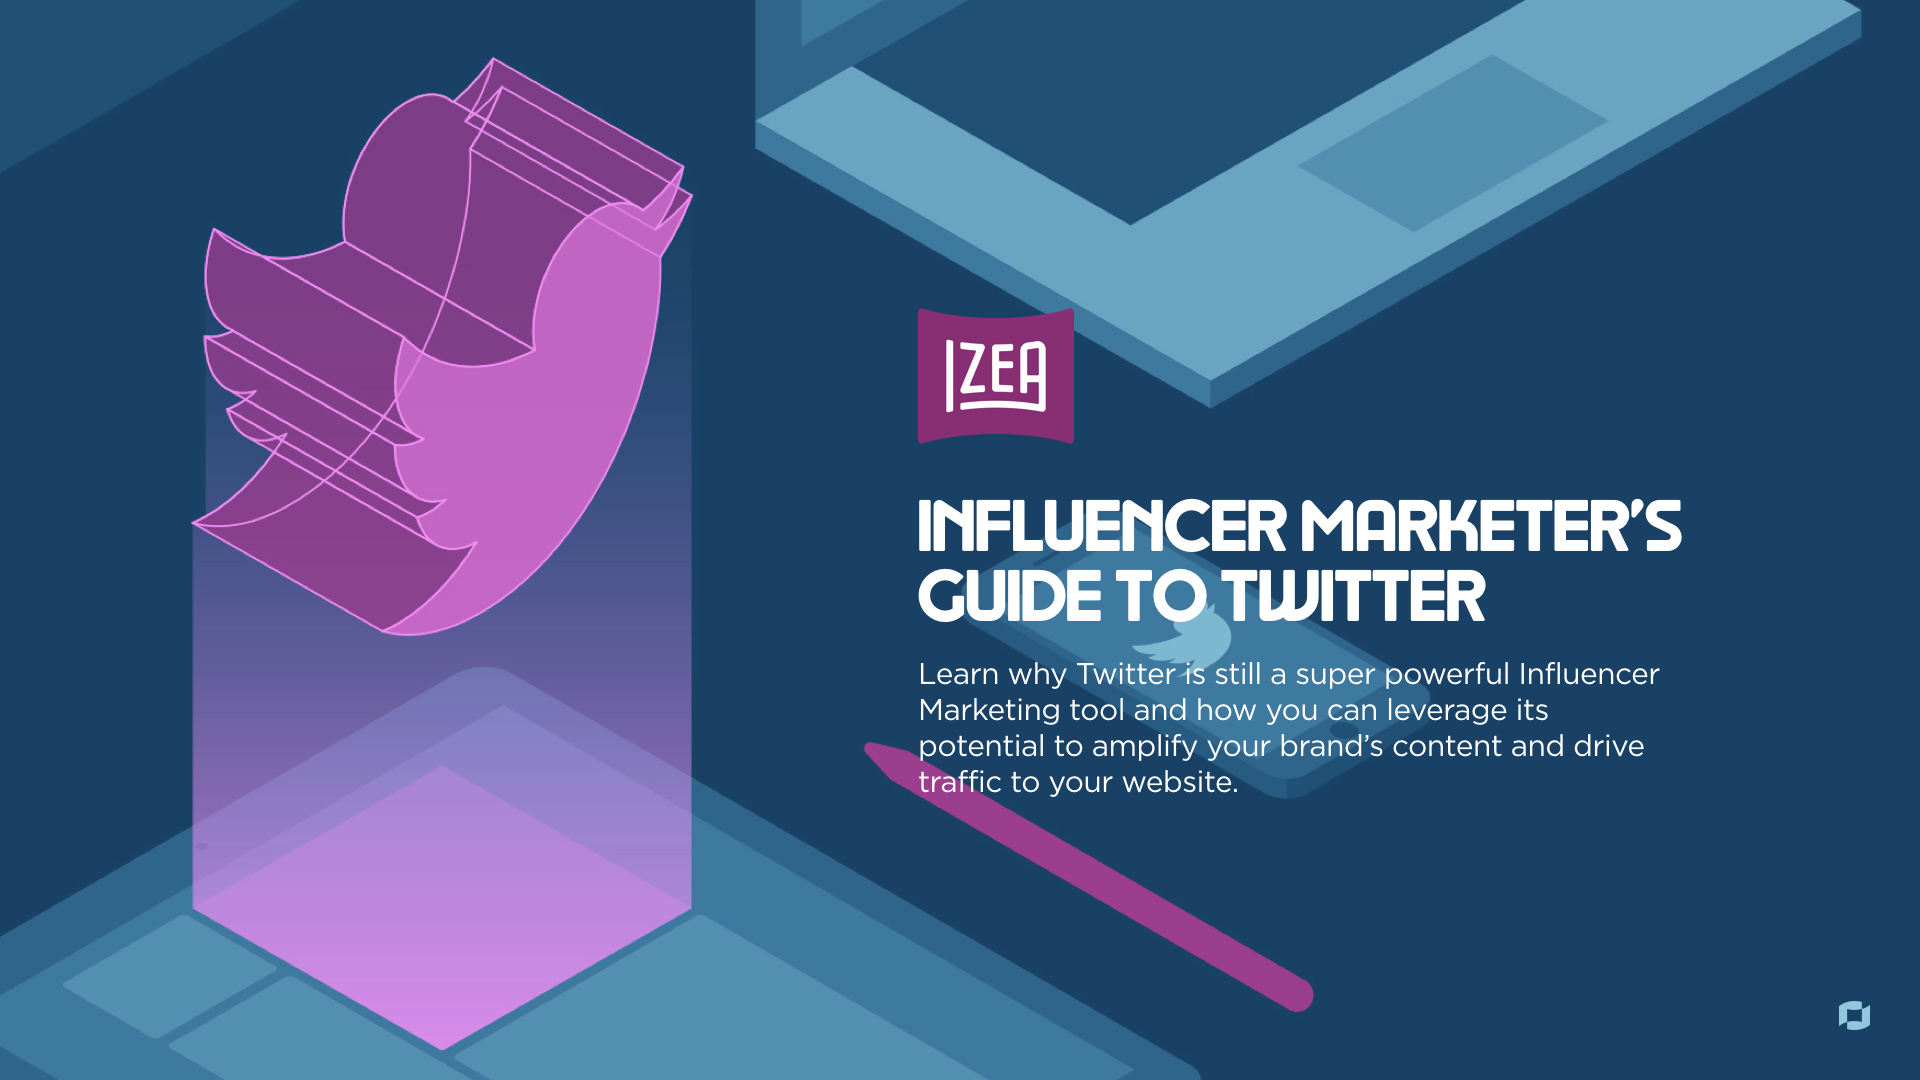 Twitter Influencer Marketing Ebook Cover